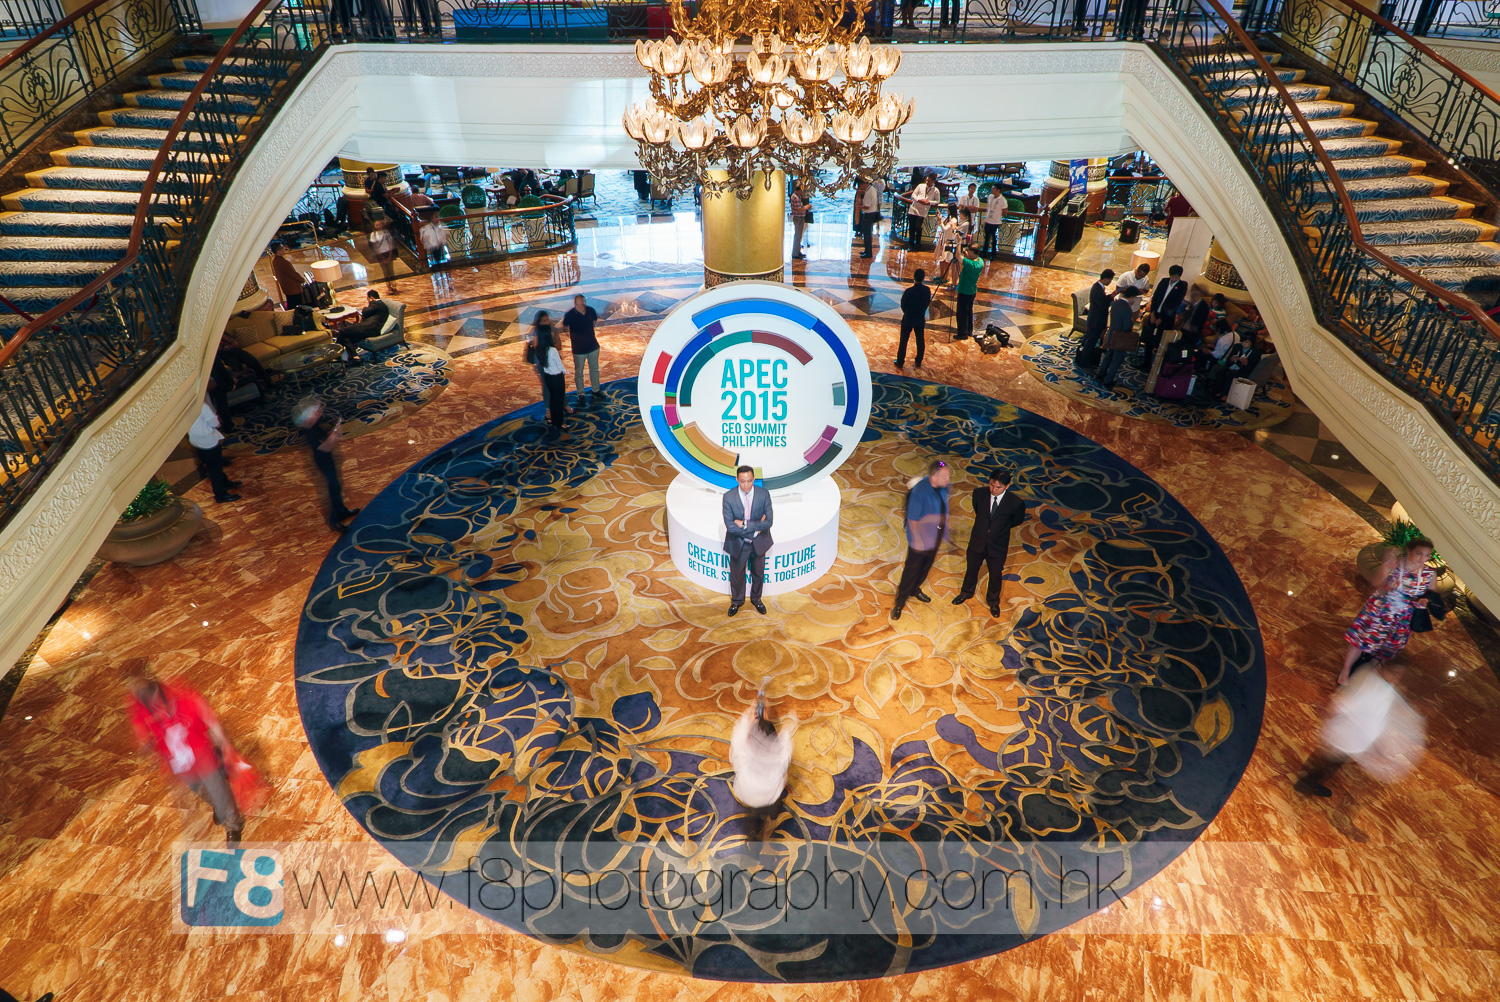 The lobby of the Shangri-La remained public access throughout the event, which became a 'selfie hotspot' for tourists and guests alike around the APEC logo.  Other parts of the hotel had extremely tight security for obvious reasons.